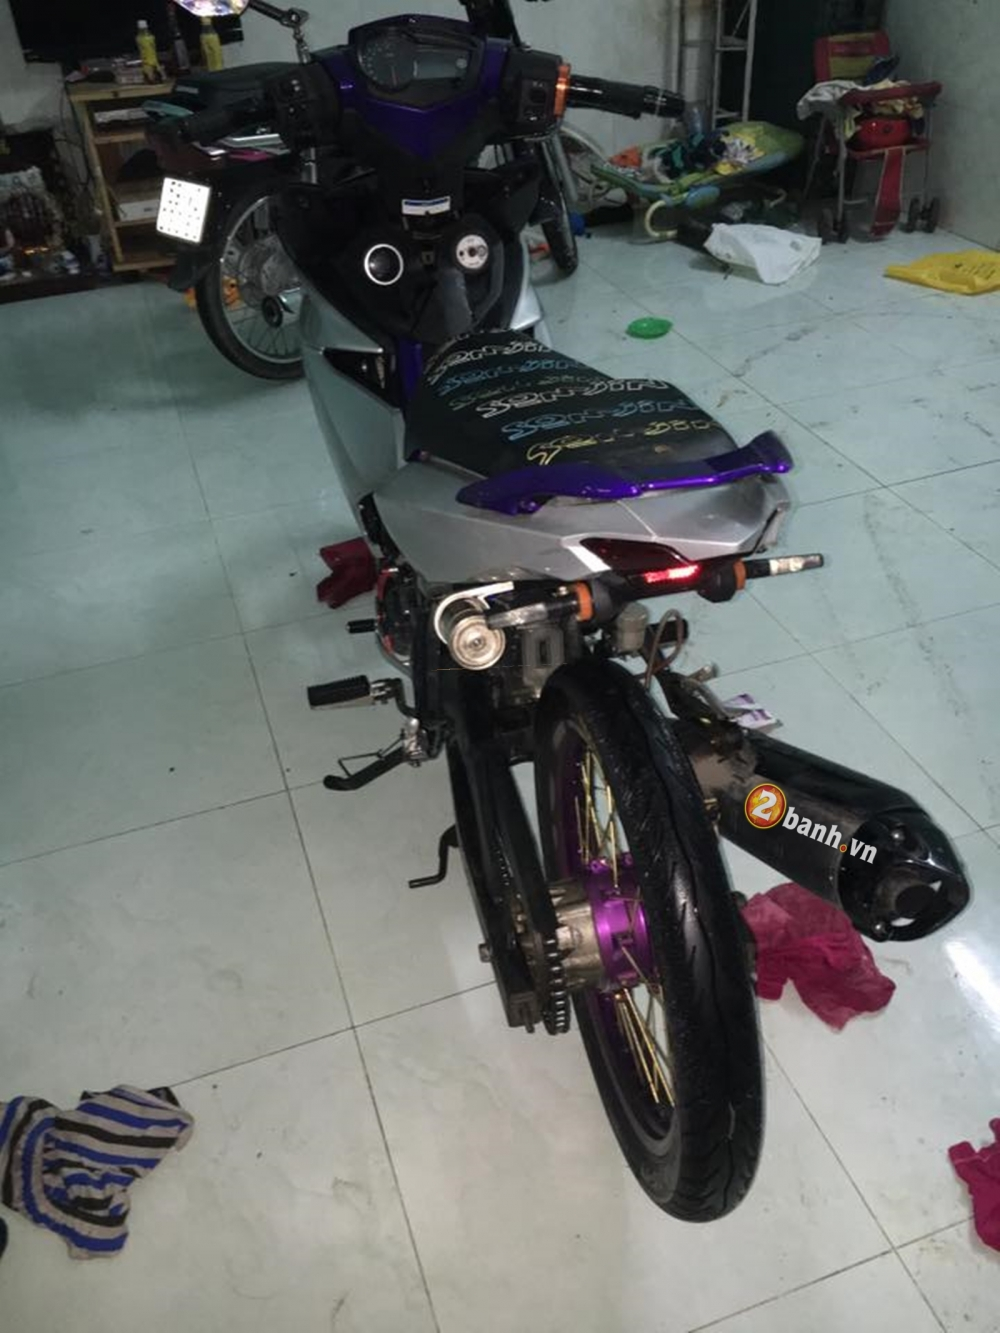 Exciter 150 don nhe cung banh cam - 2